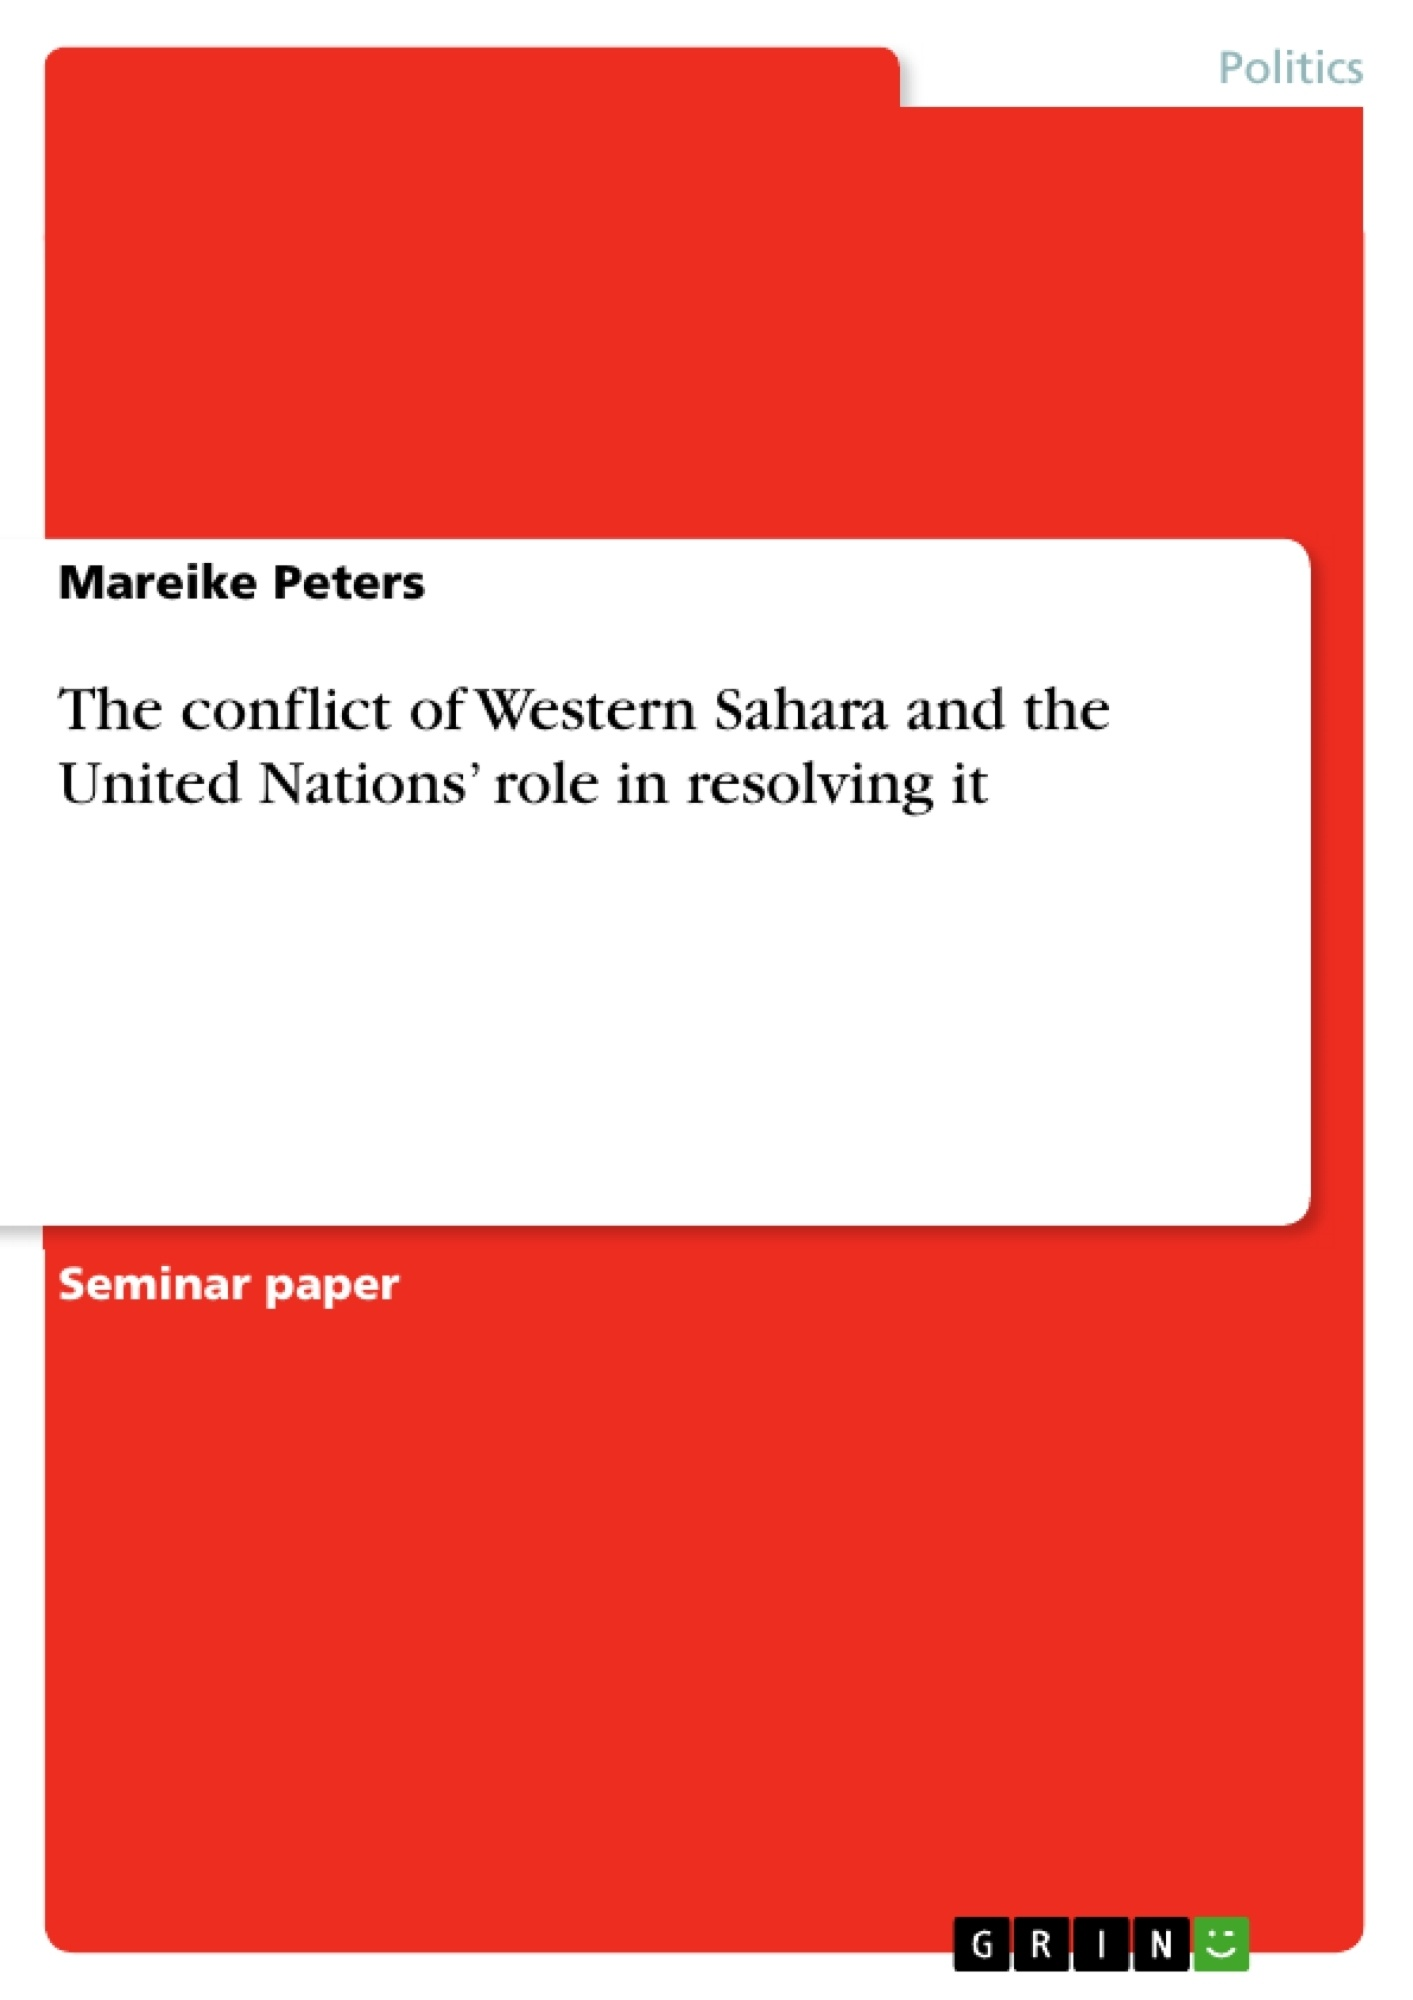 Title: The conflict of Western Sahara and the United Nations' role in resolving it